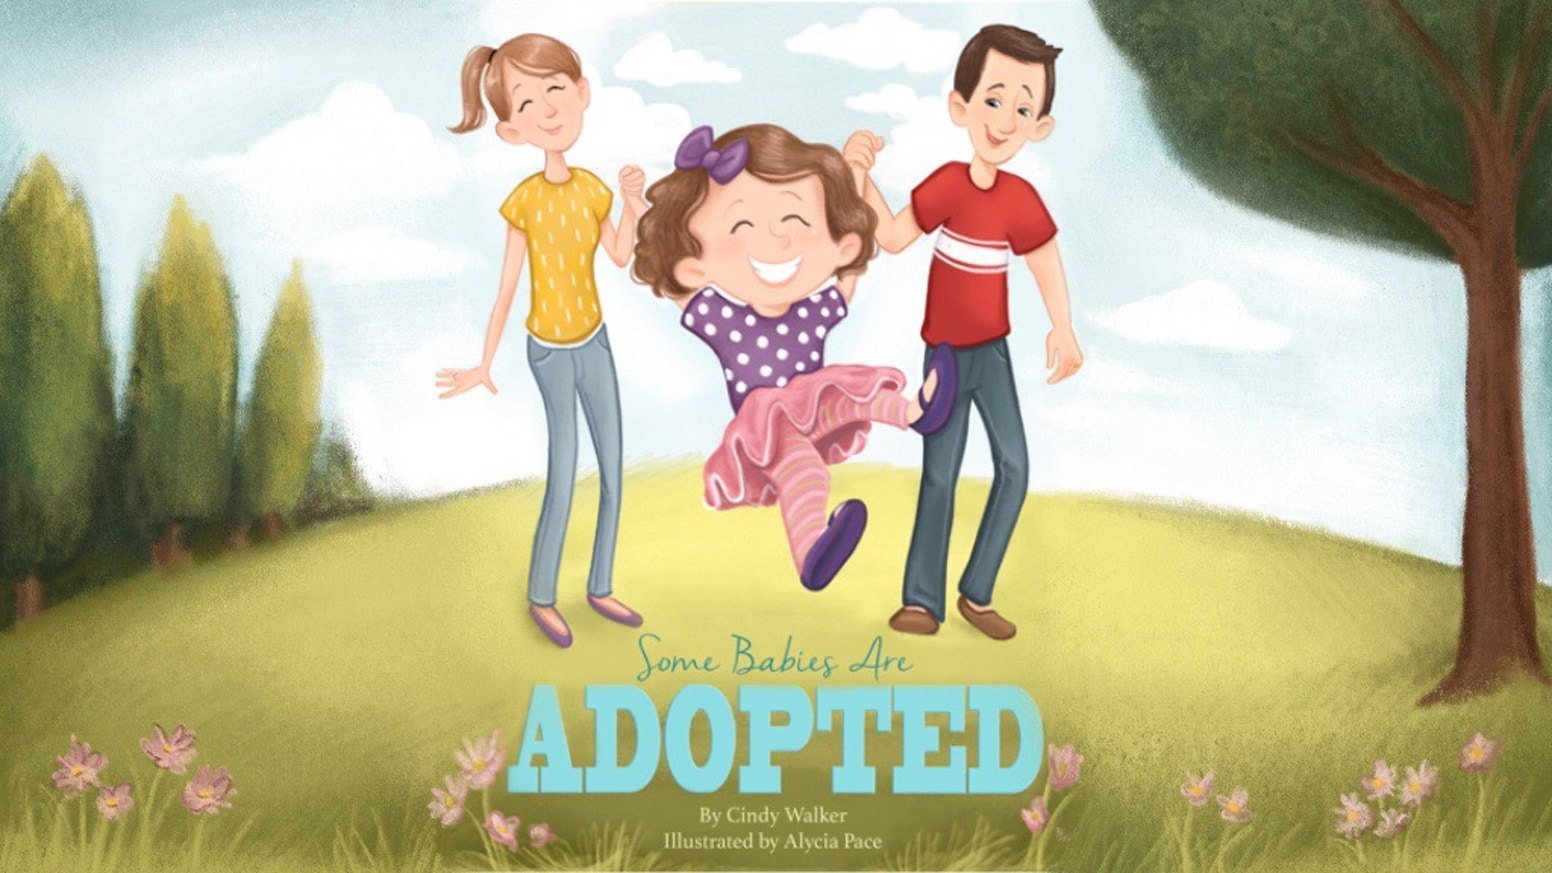 An uplifting adoption story for young adopted children and their friends and families.